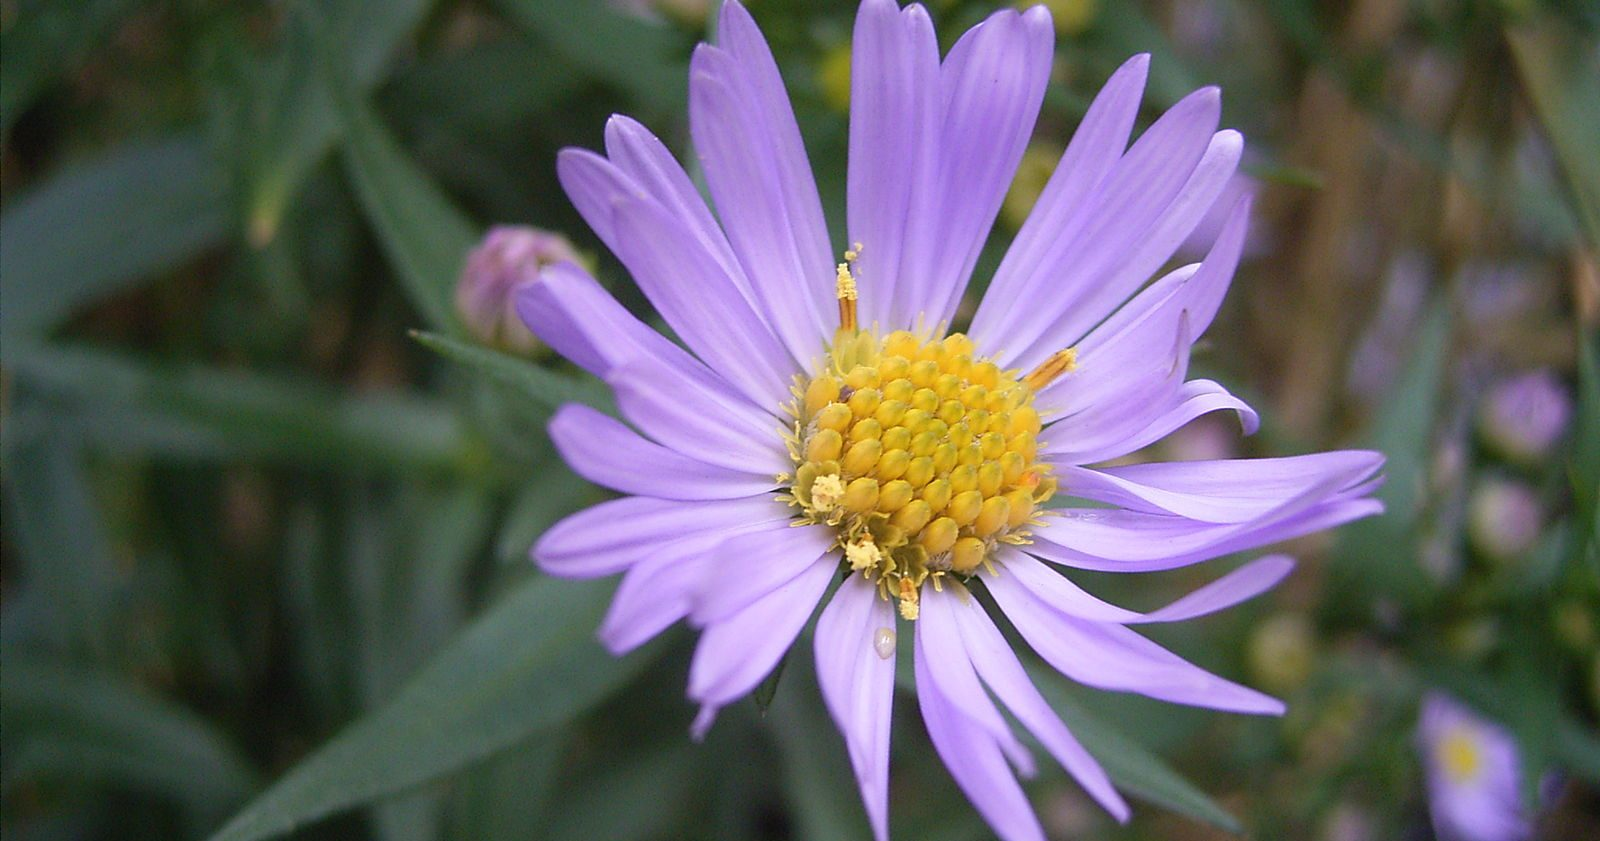 The mysterious photo of a purple flower that receives 78 million hits each day